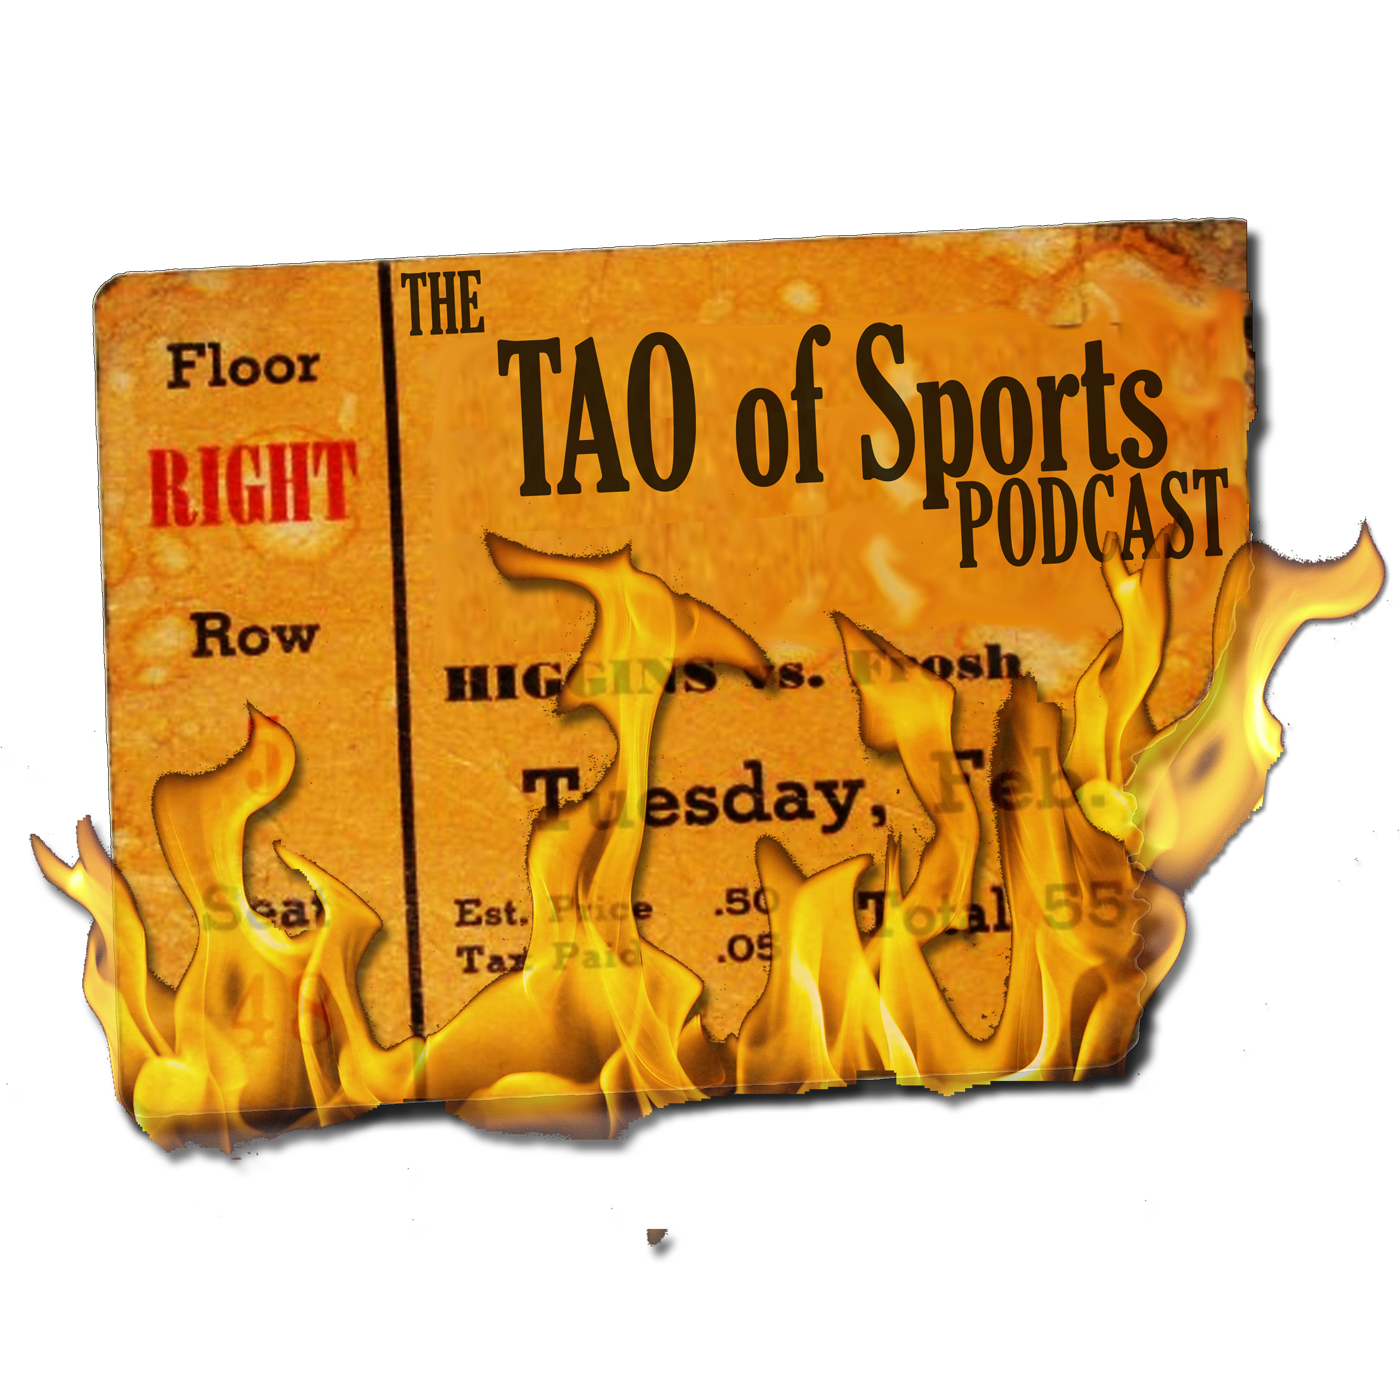 The Tao of Sports Podcast – The Definitive Sports, Marketing, Business Industry News Podcast show art